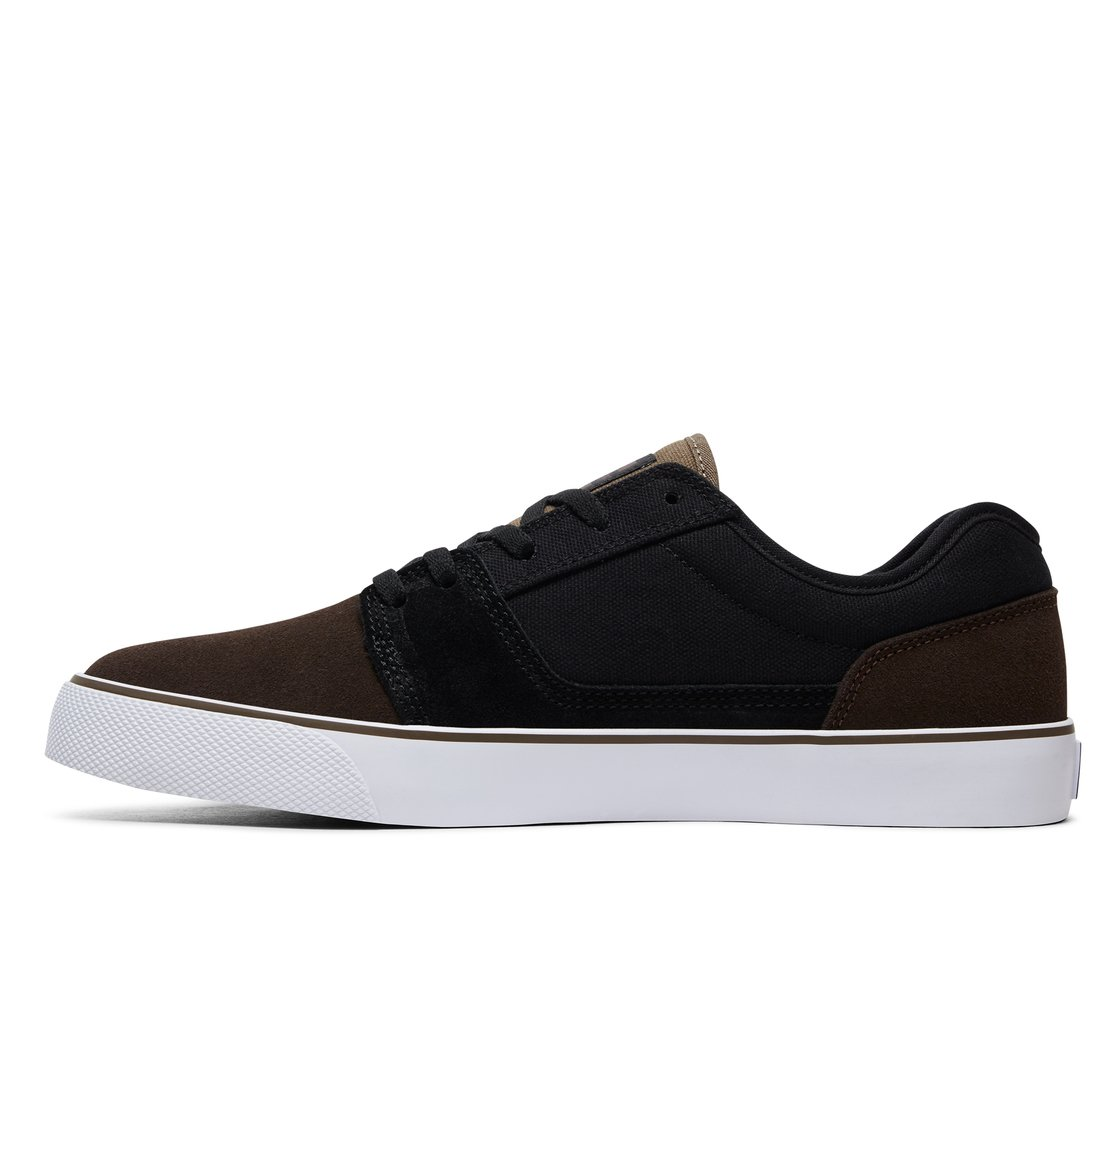 DC-Shoes-Tonik-Baskets-pour-Homme-302905 miniature 22